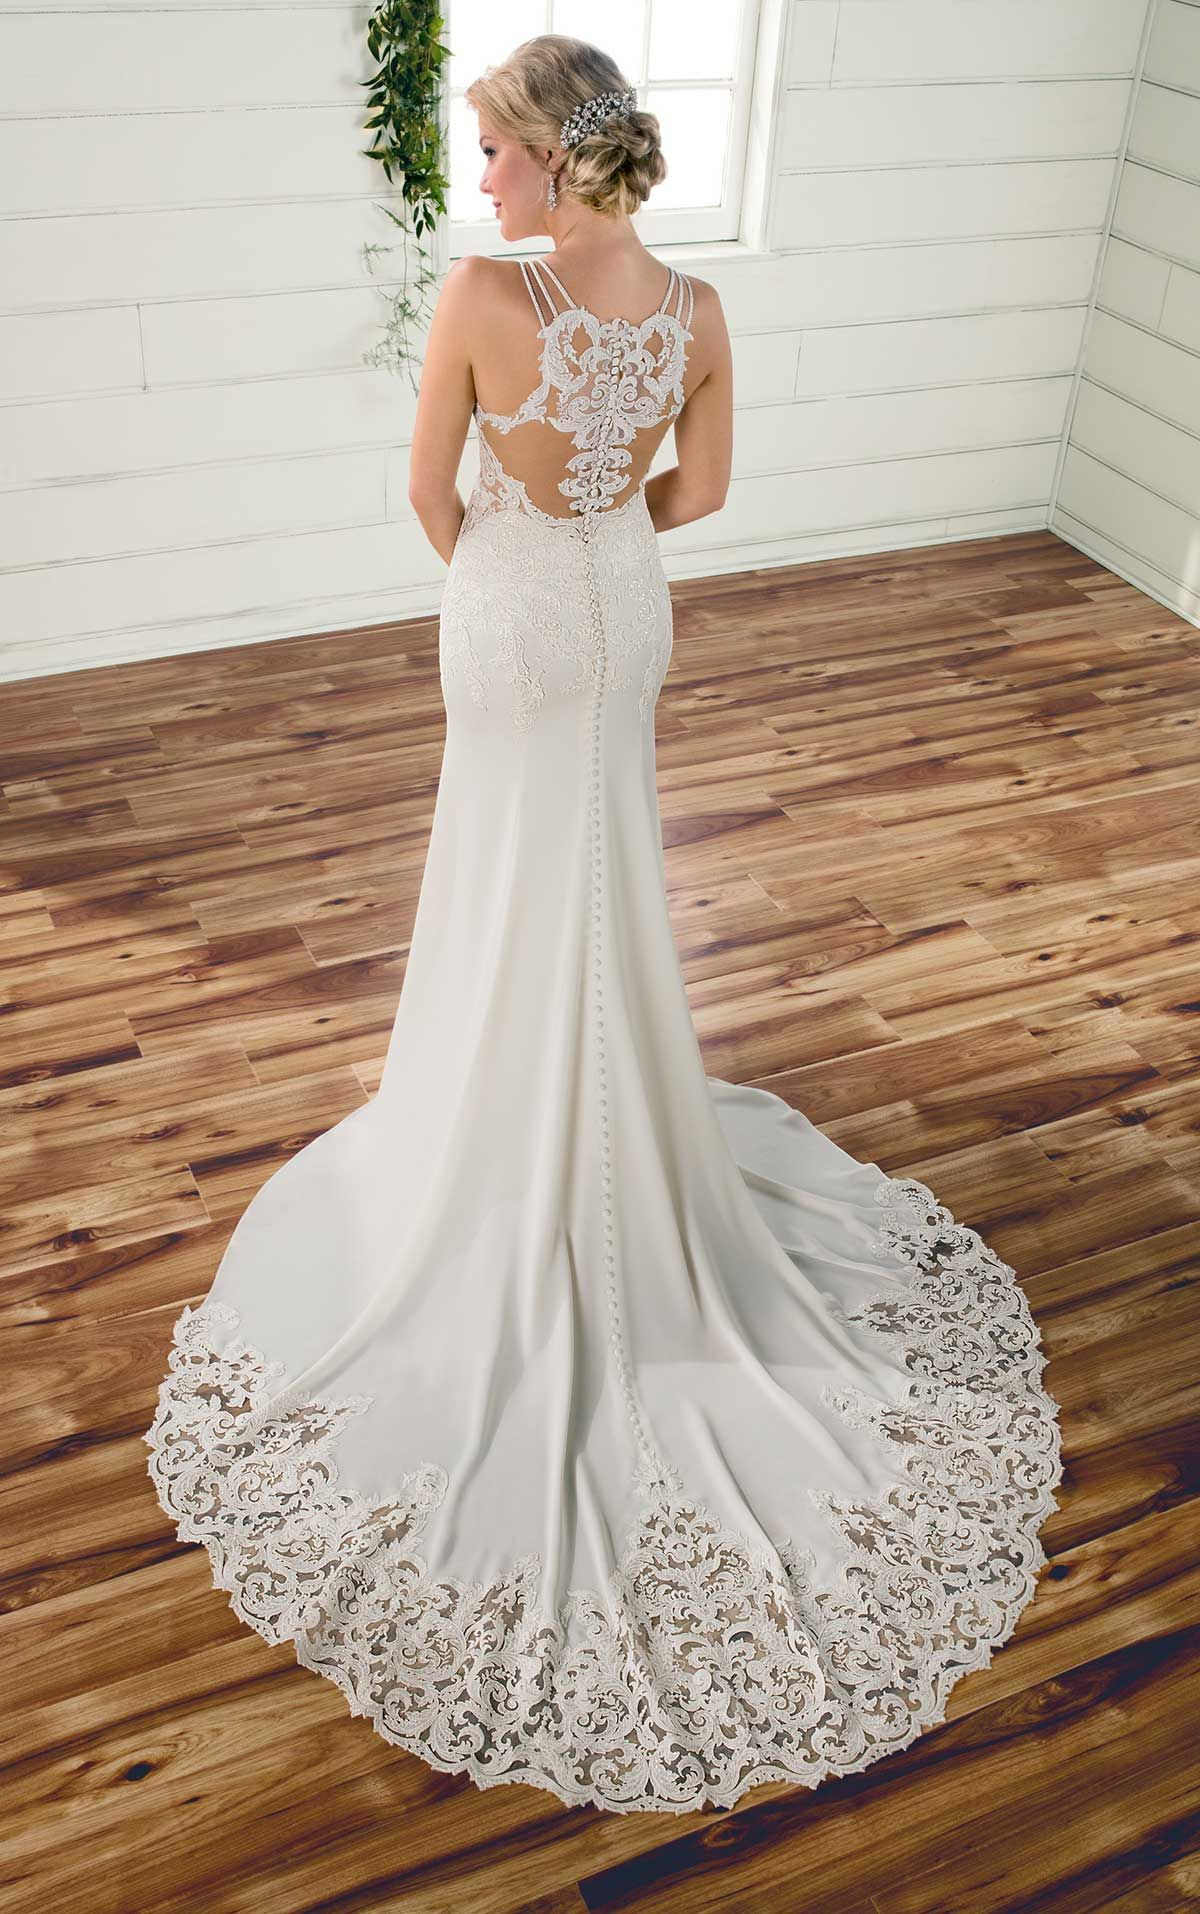 Simple lace and crepe wedding dress available at The